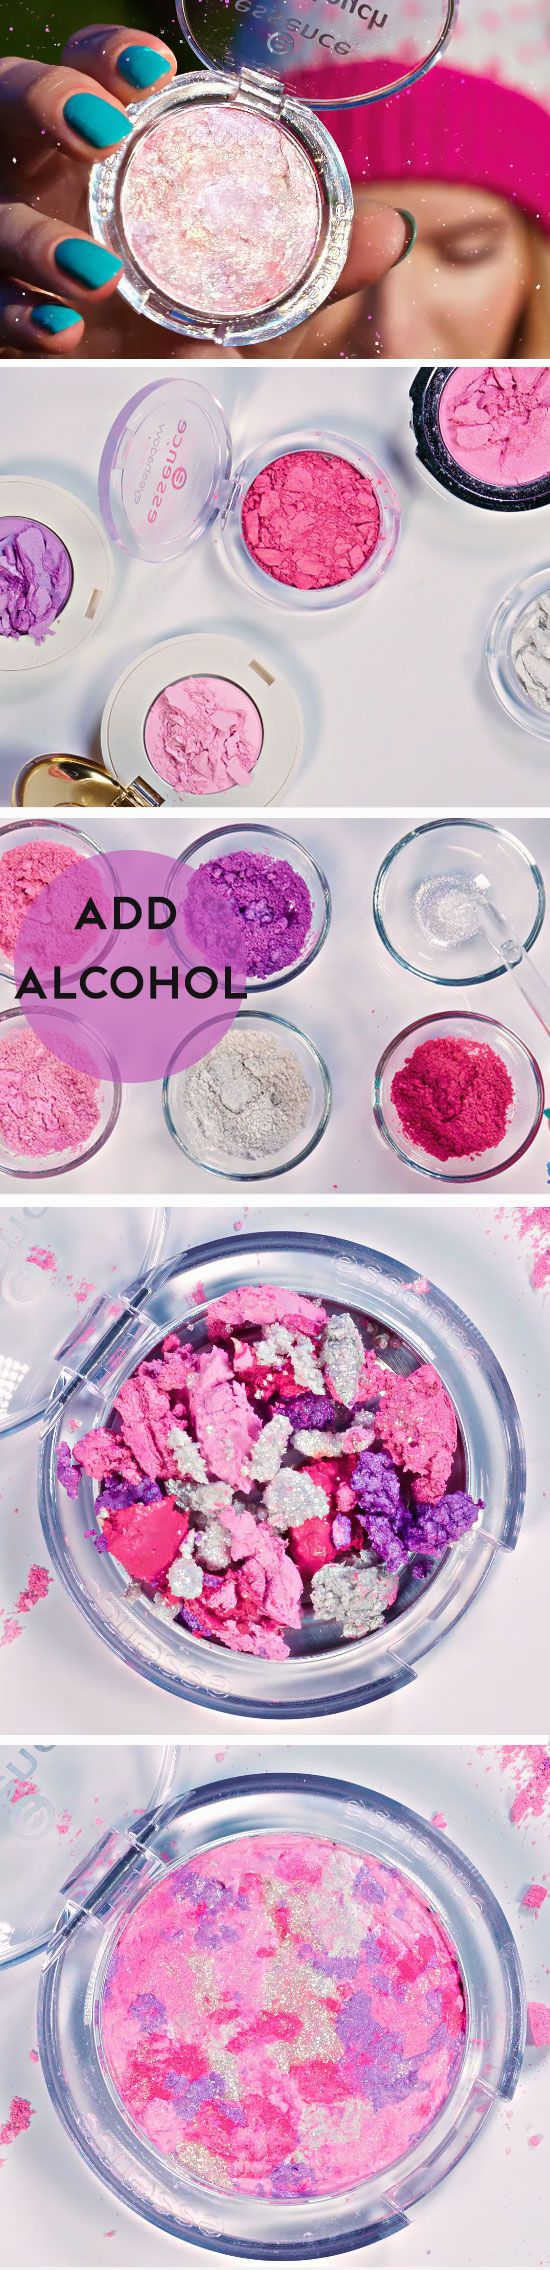 Use Old Shadows to Make Galaxy Blush | Awesome Beauty Hacks Tips and Tricks | Easy Makeup Hacks Every Girl Should Know